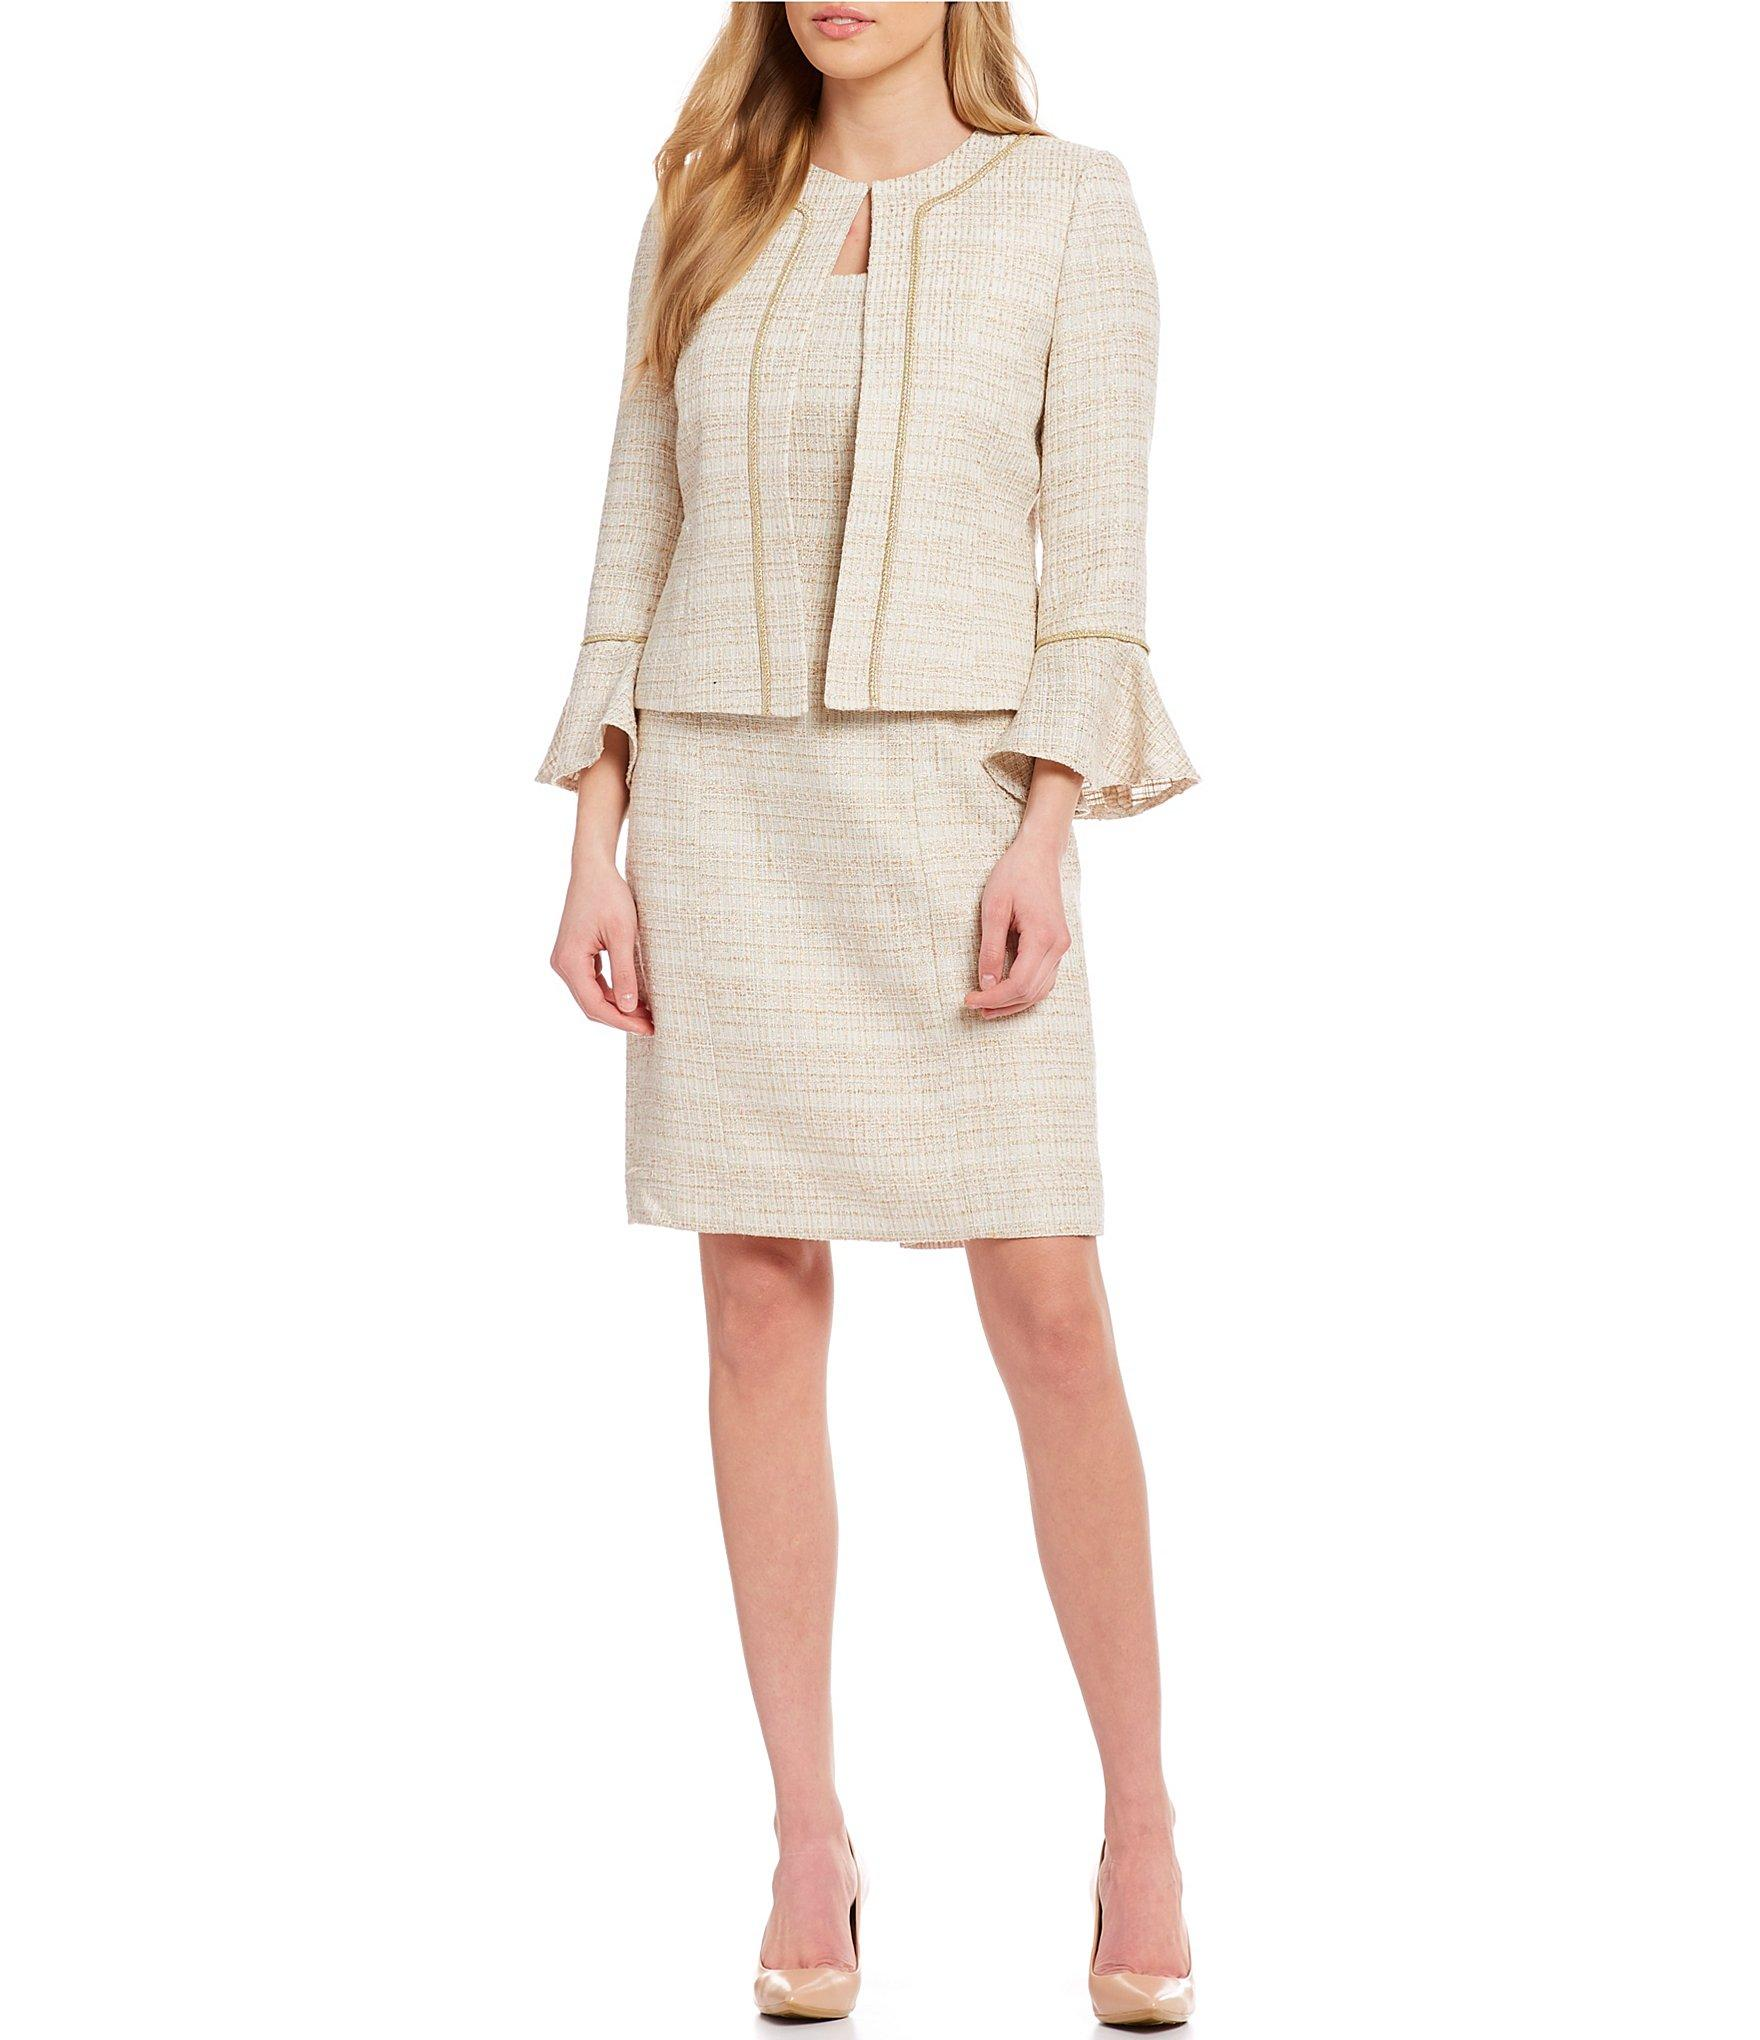 8b161ec640e2 Tahari Boucle Skirt Suit With Open Jacket in White - Lyst